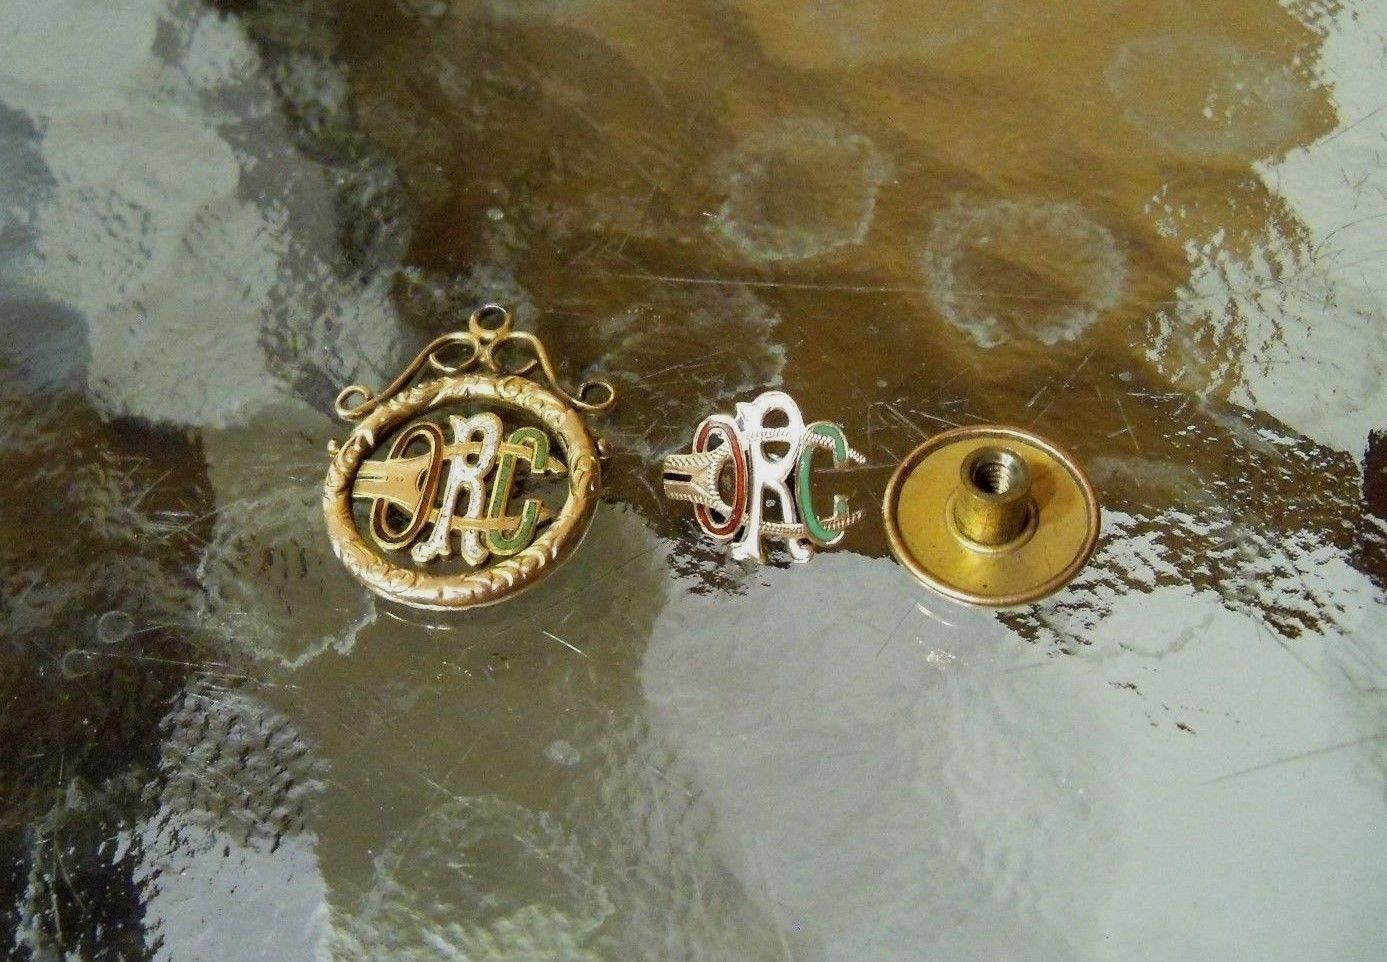 2 Diff Orc Railroad Conductor Badge Lapel Pin Watch Fob